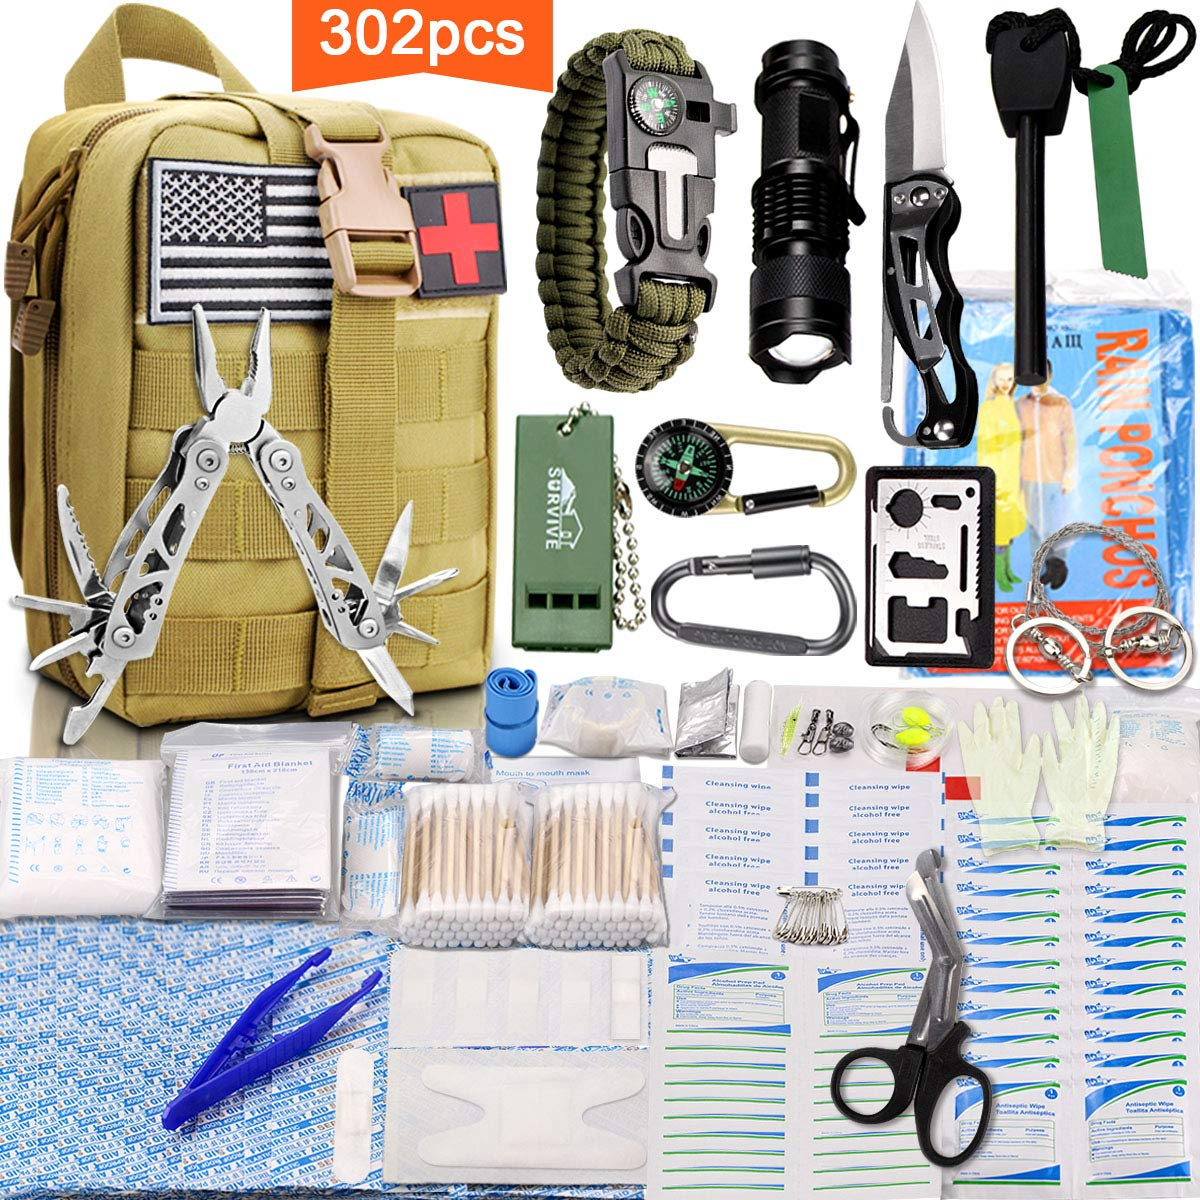 Monoki First Aid Survival Kit, 302Pcs Tactical Molle EMT IFAK Pouch Outdoor Gear EDC Emergency Survival Kits First Aid Kit Trauma Bag for Hiking Camping Hunting Car Travel or Adventures(Mud Yellow) by Monoki (Image #1)